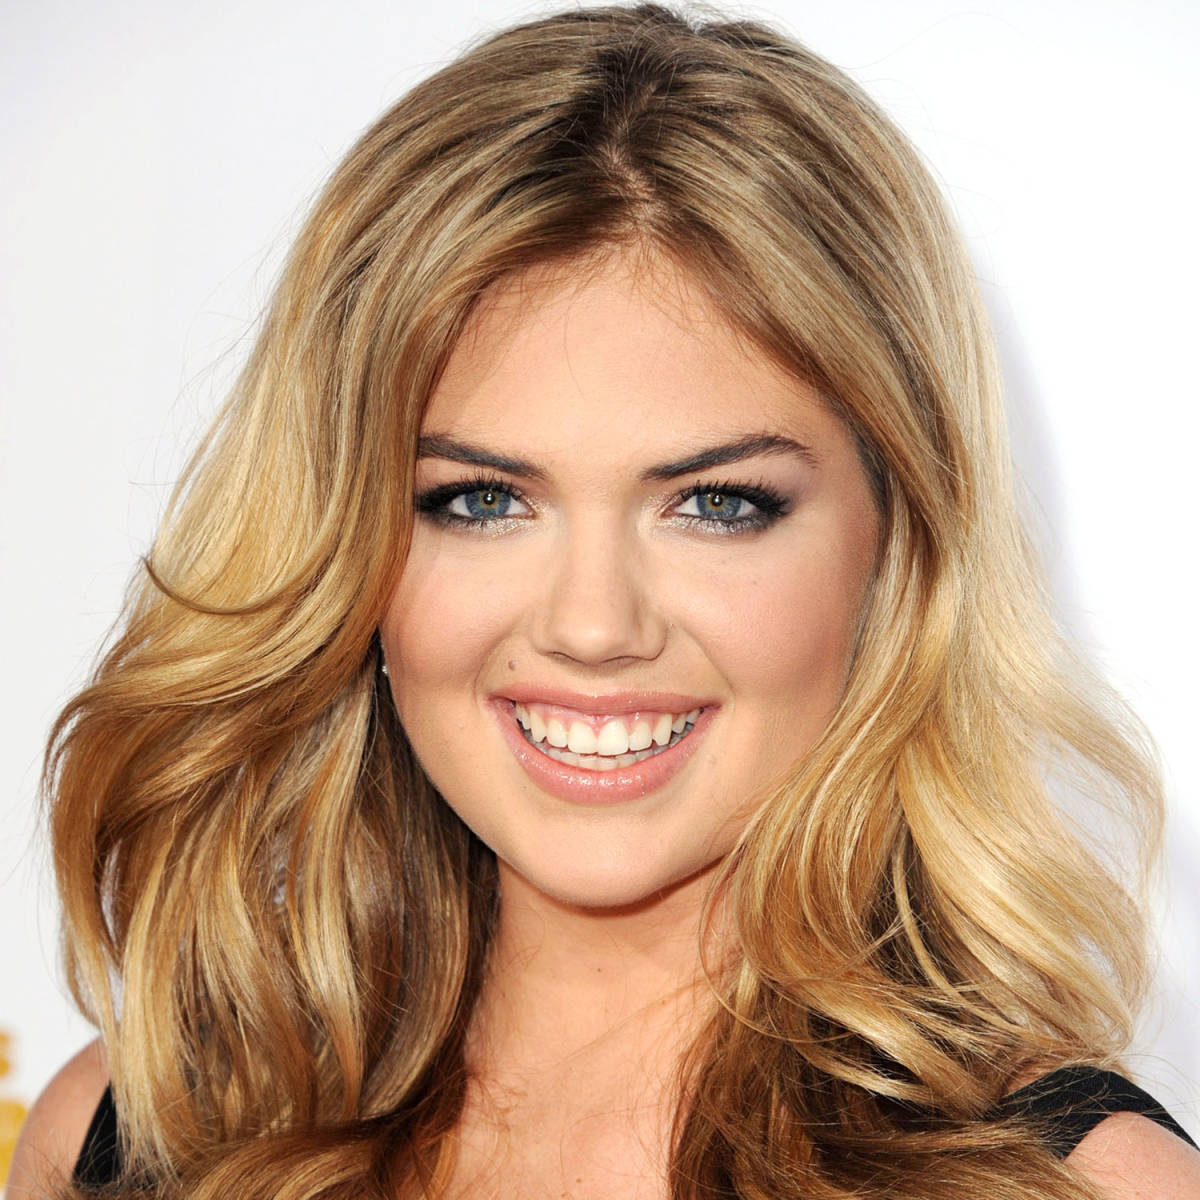 kate-upton-hd-wallpaper | tomorrowoman